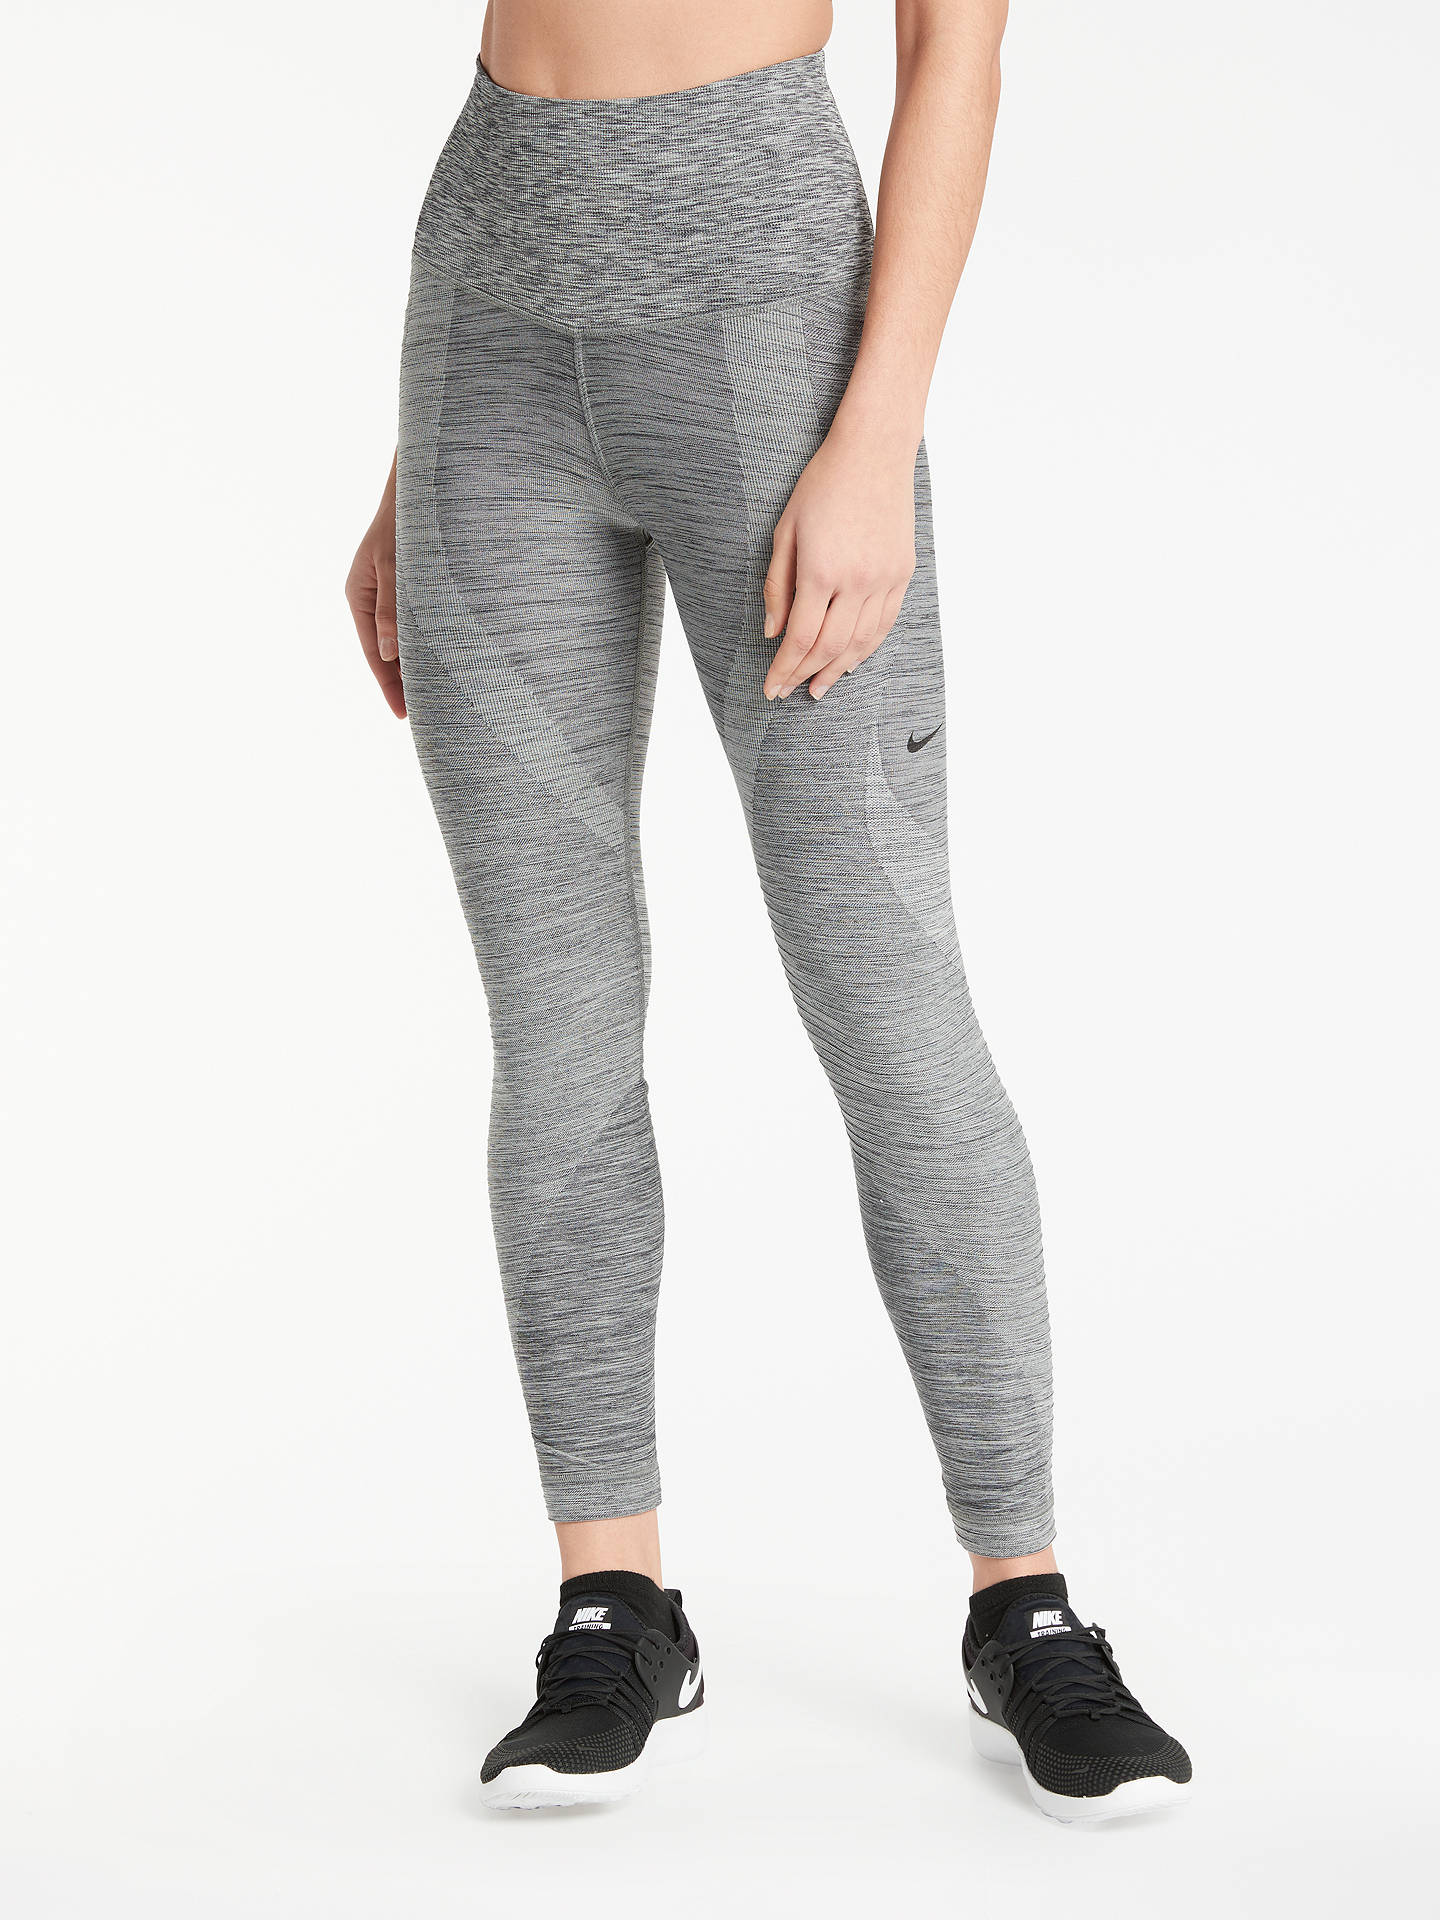 0fed2c01e595e Buy Nike Power Sculpt Hyper Tights